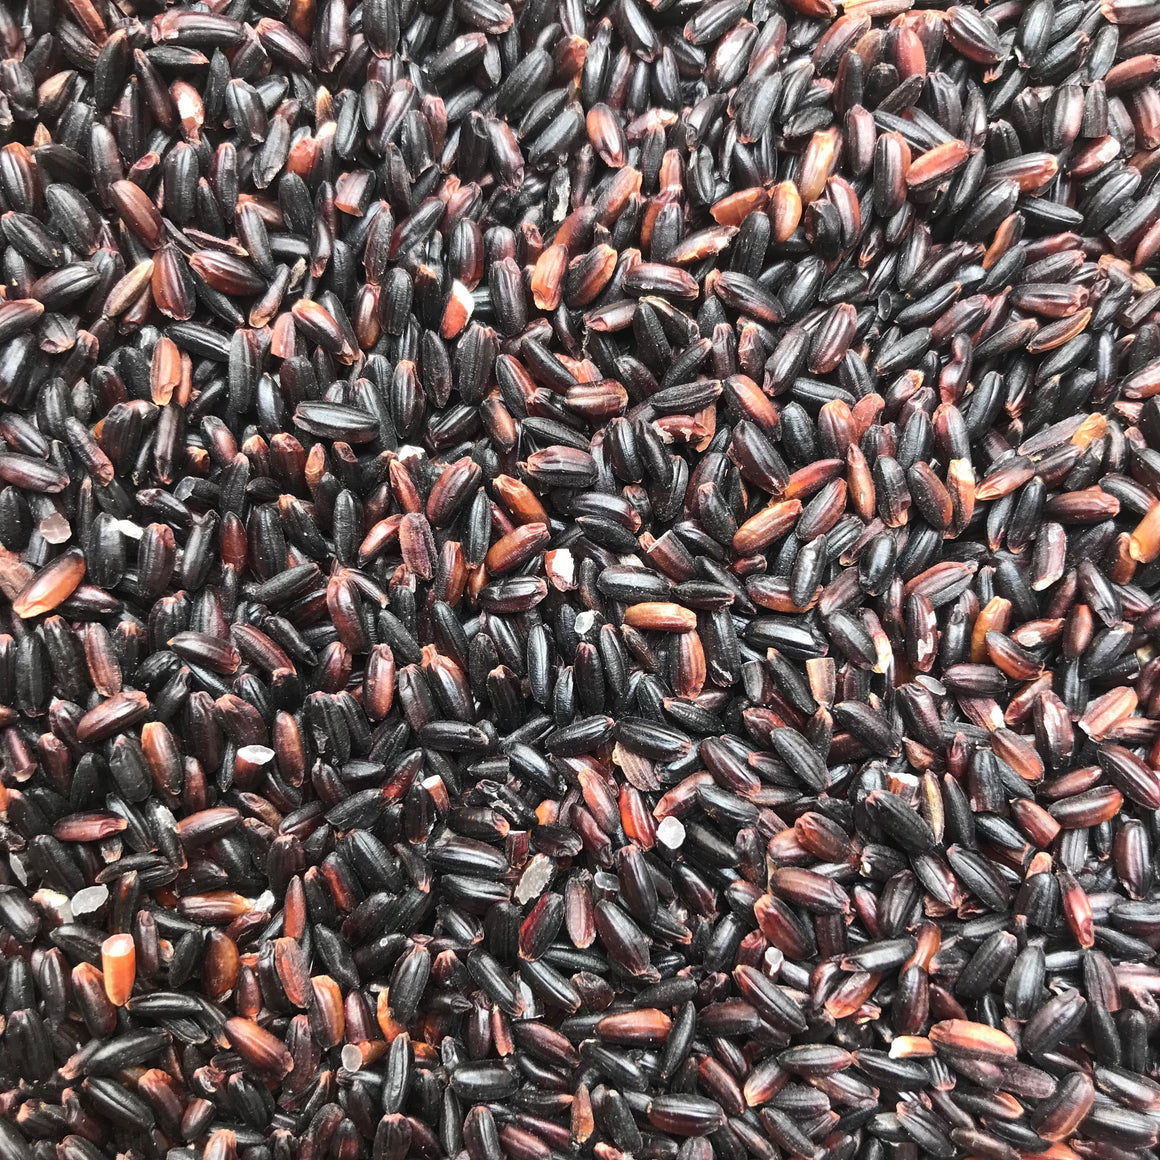 Sable Long Grain Black Rice